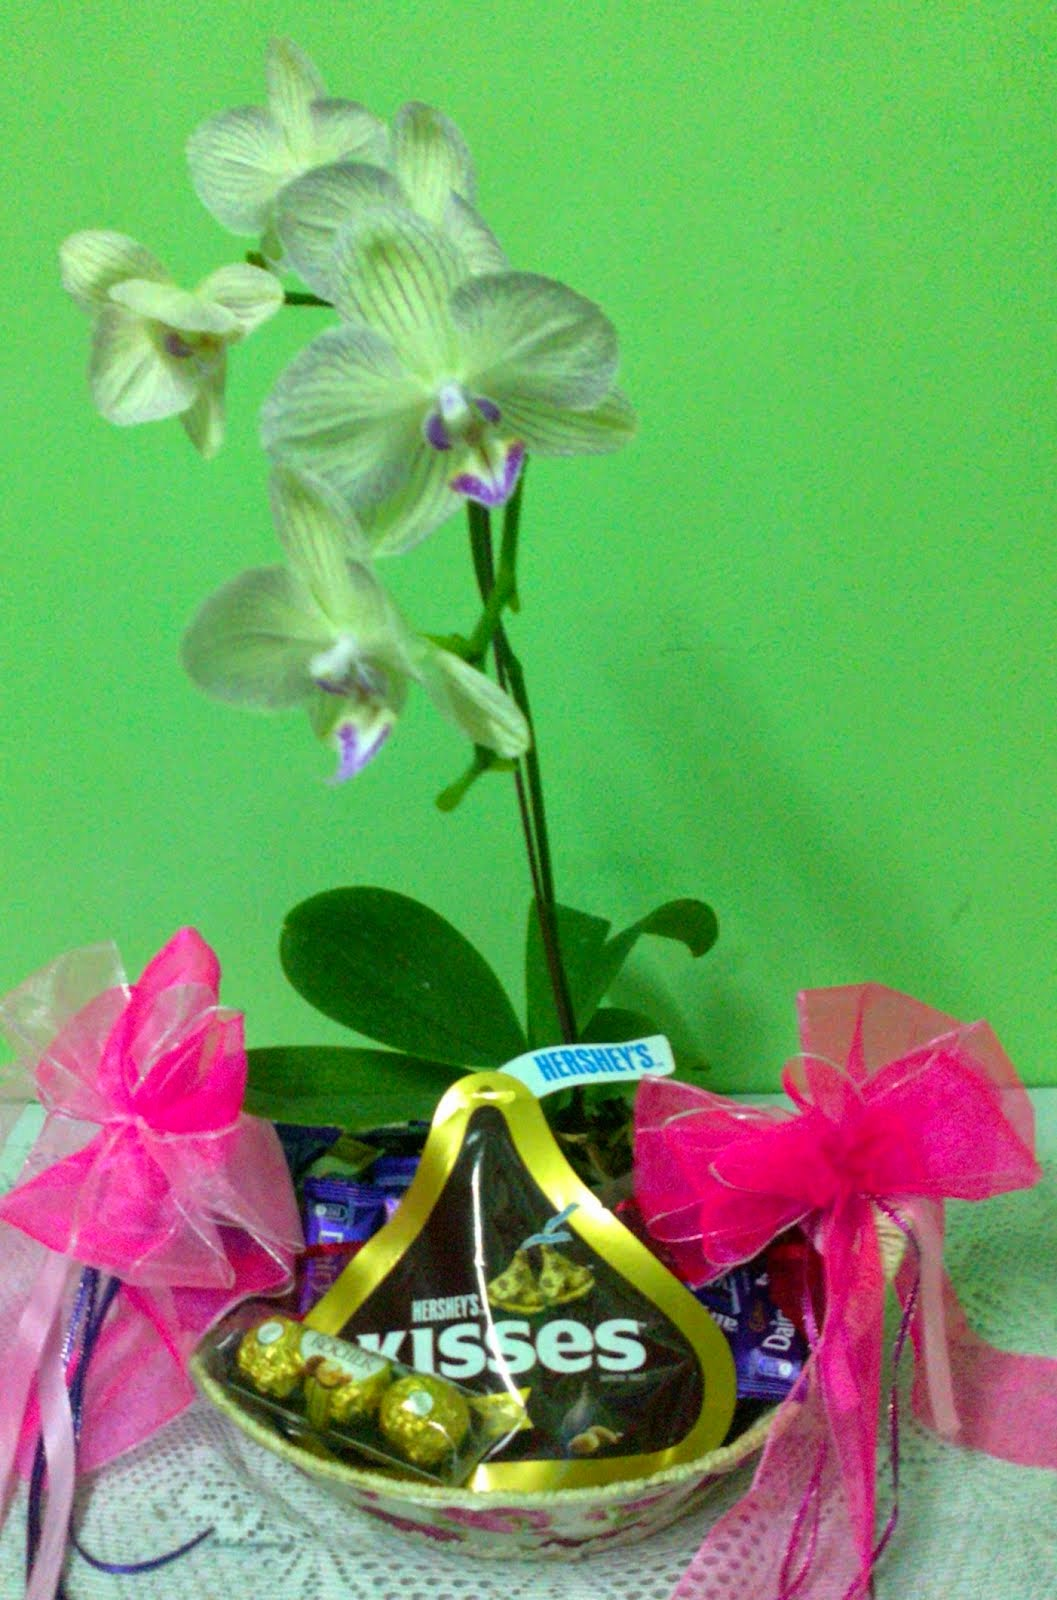 Orchid's gift shoppe